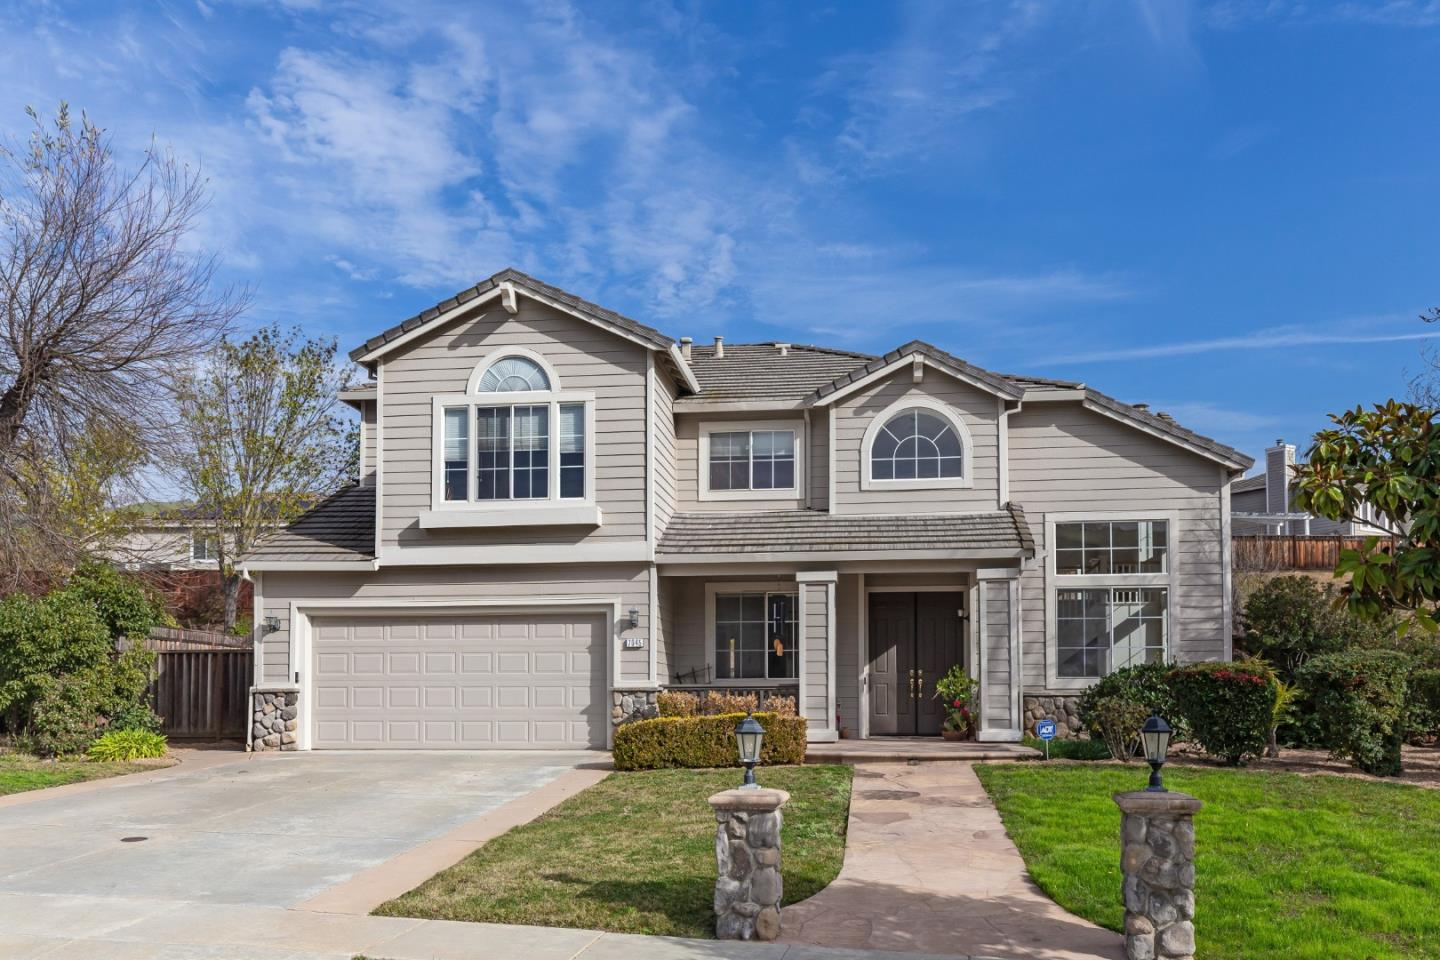 7045 Livery LN, Evergreen, California